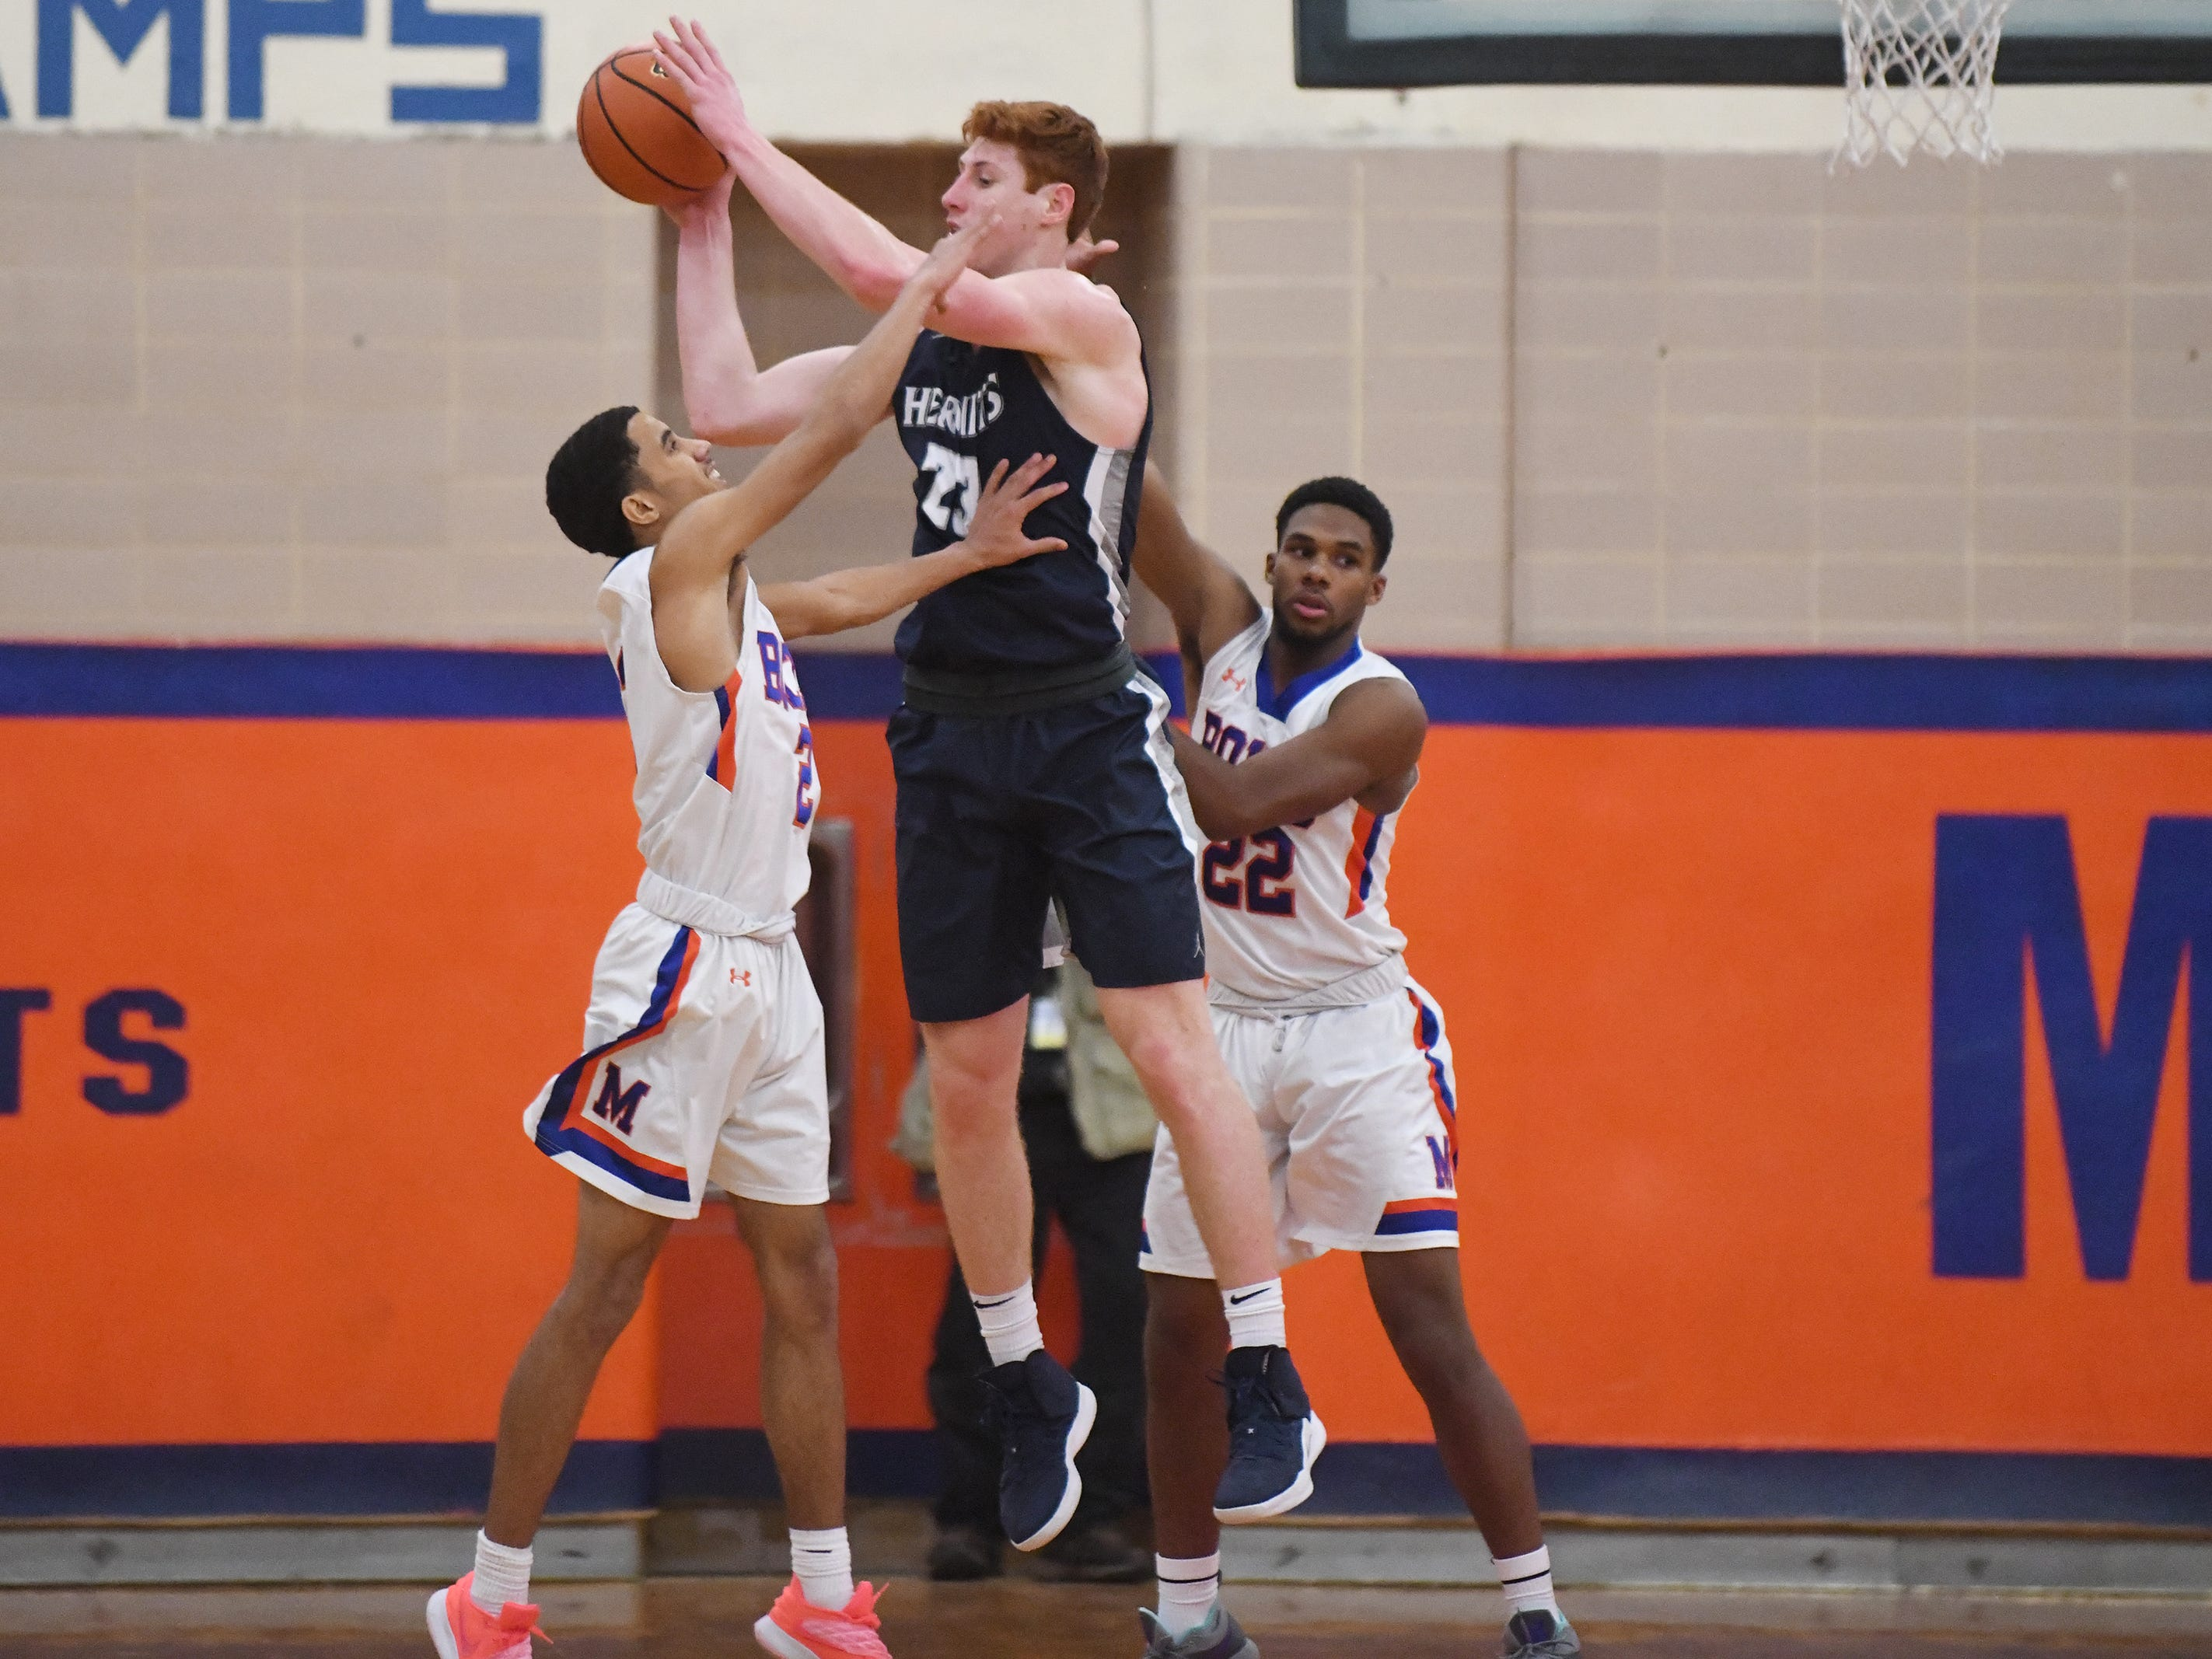 St. Augustine's Andrew Delaney grabs a pass during a game against Millville. The Hermits topped the Thunderbolts 66-53 on Friday, Jan. 18, 2019.